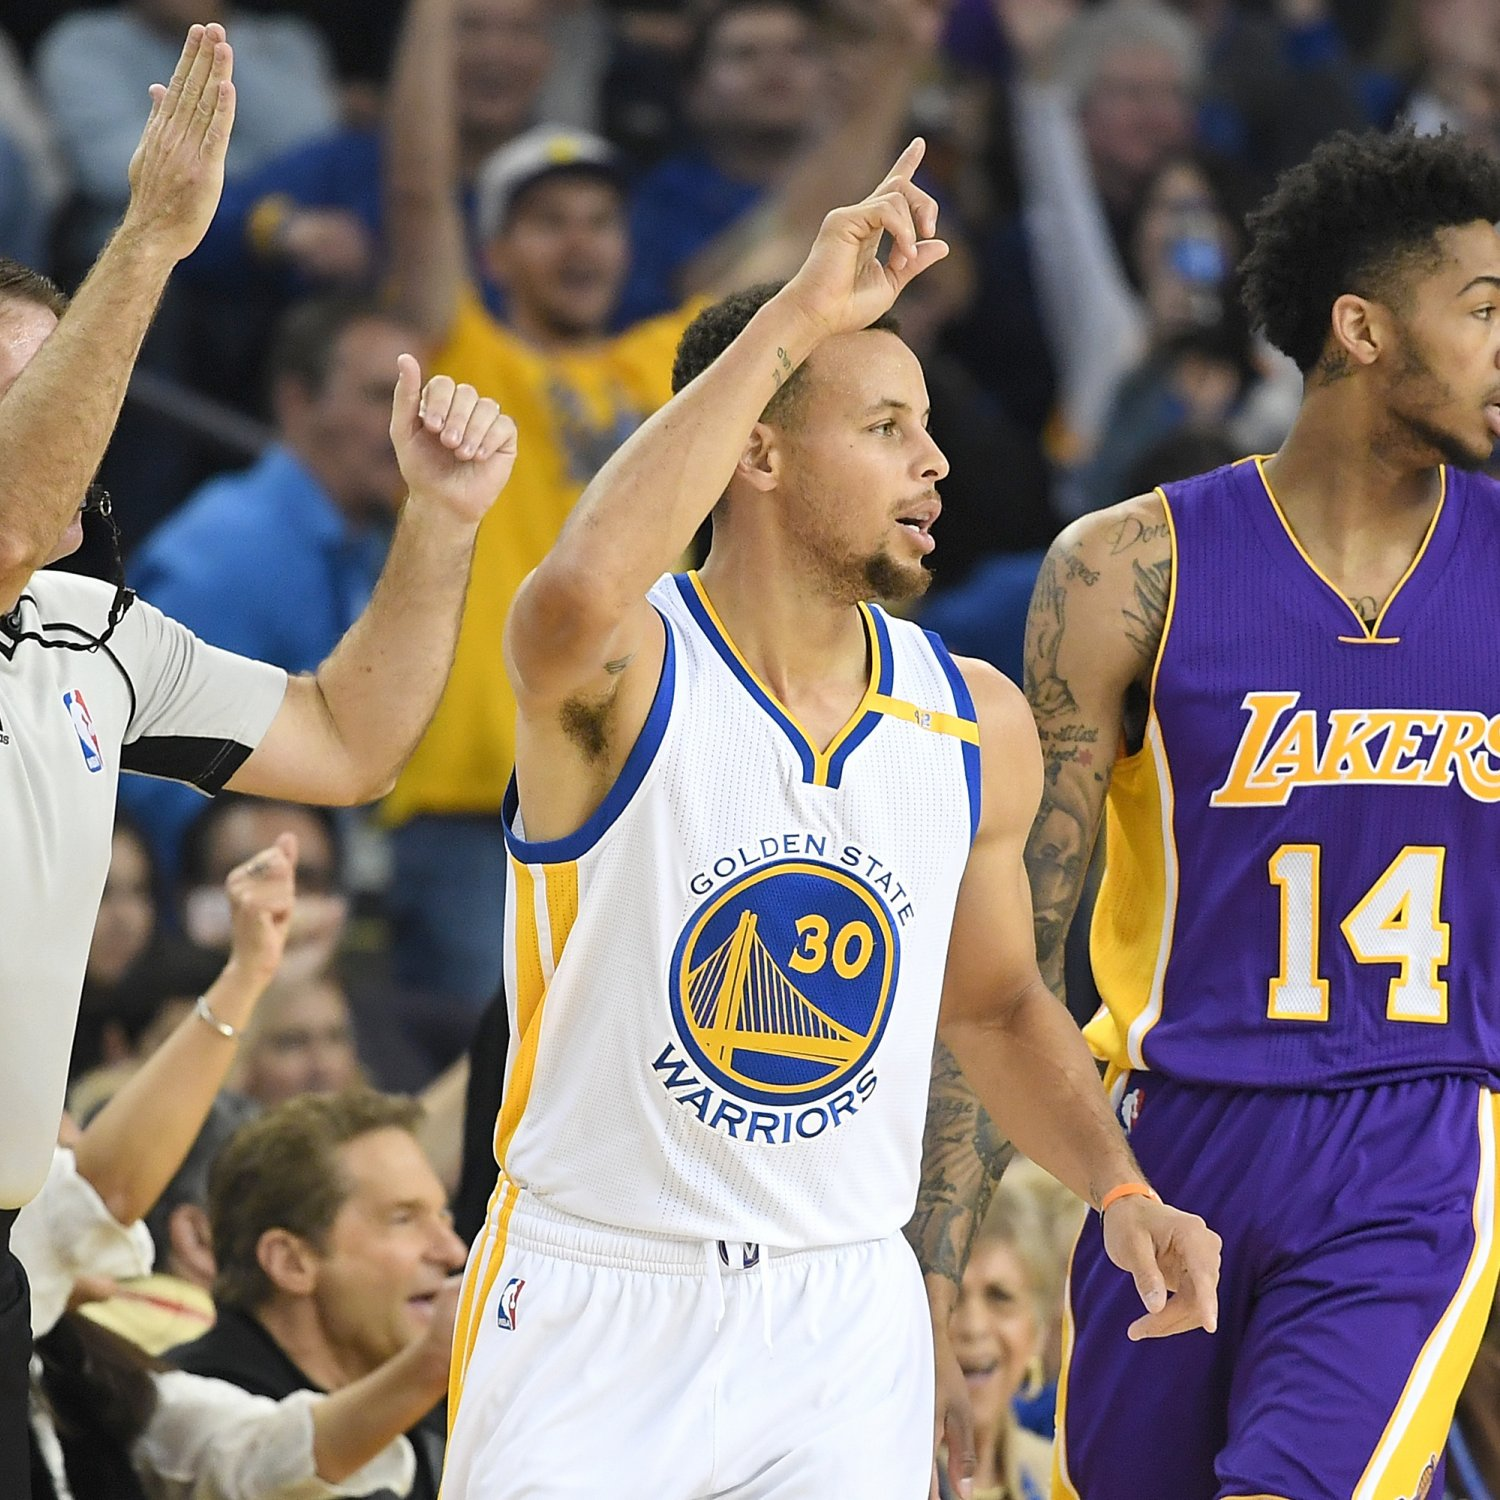 Golden State Warriors Vs. L.A. Lakers: Live Score